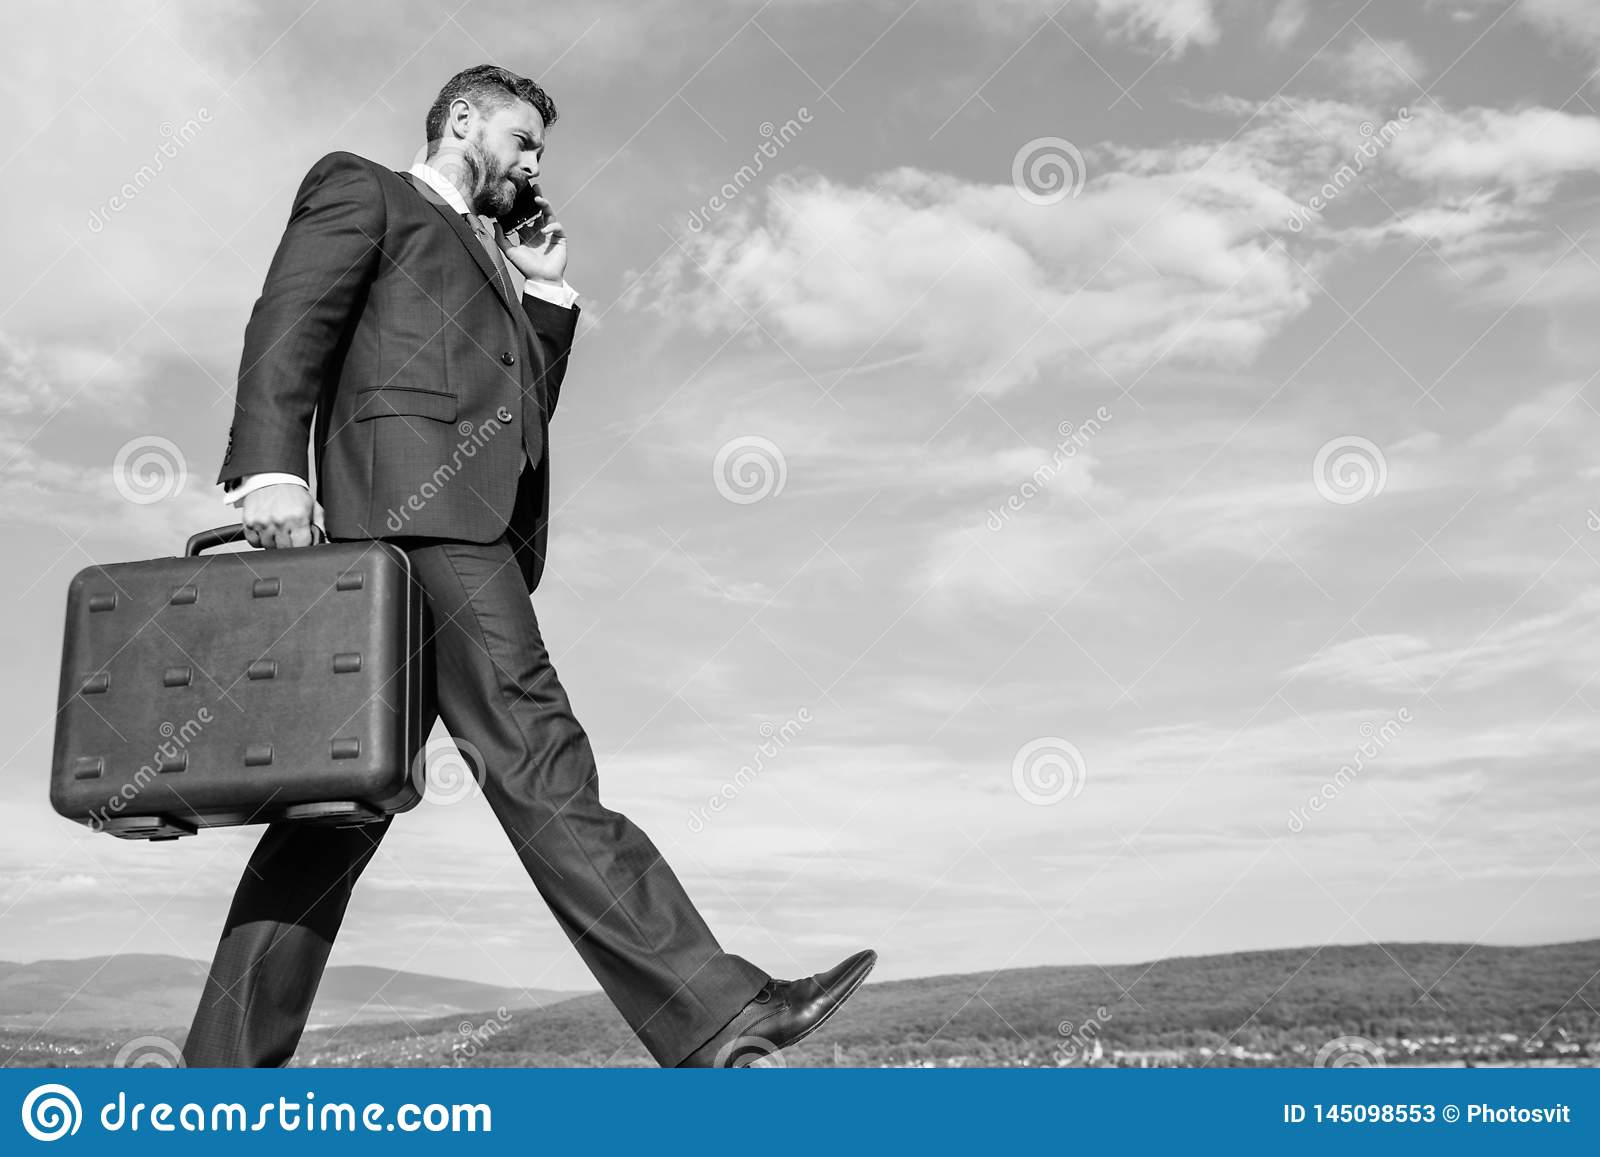 Keep going towards your goal. Businessman formal suit carries briefcase sky background. Businessman solving business